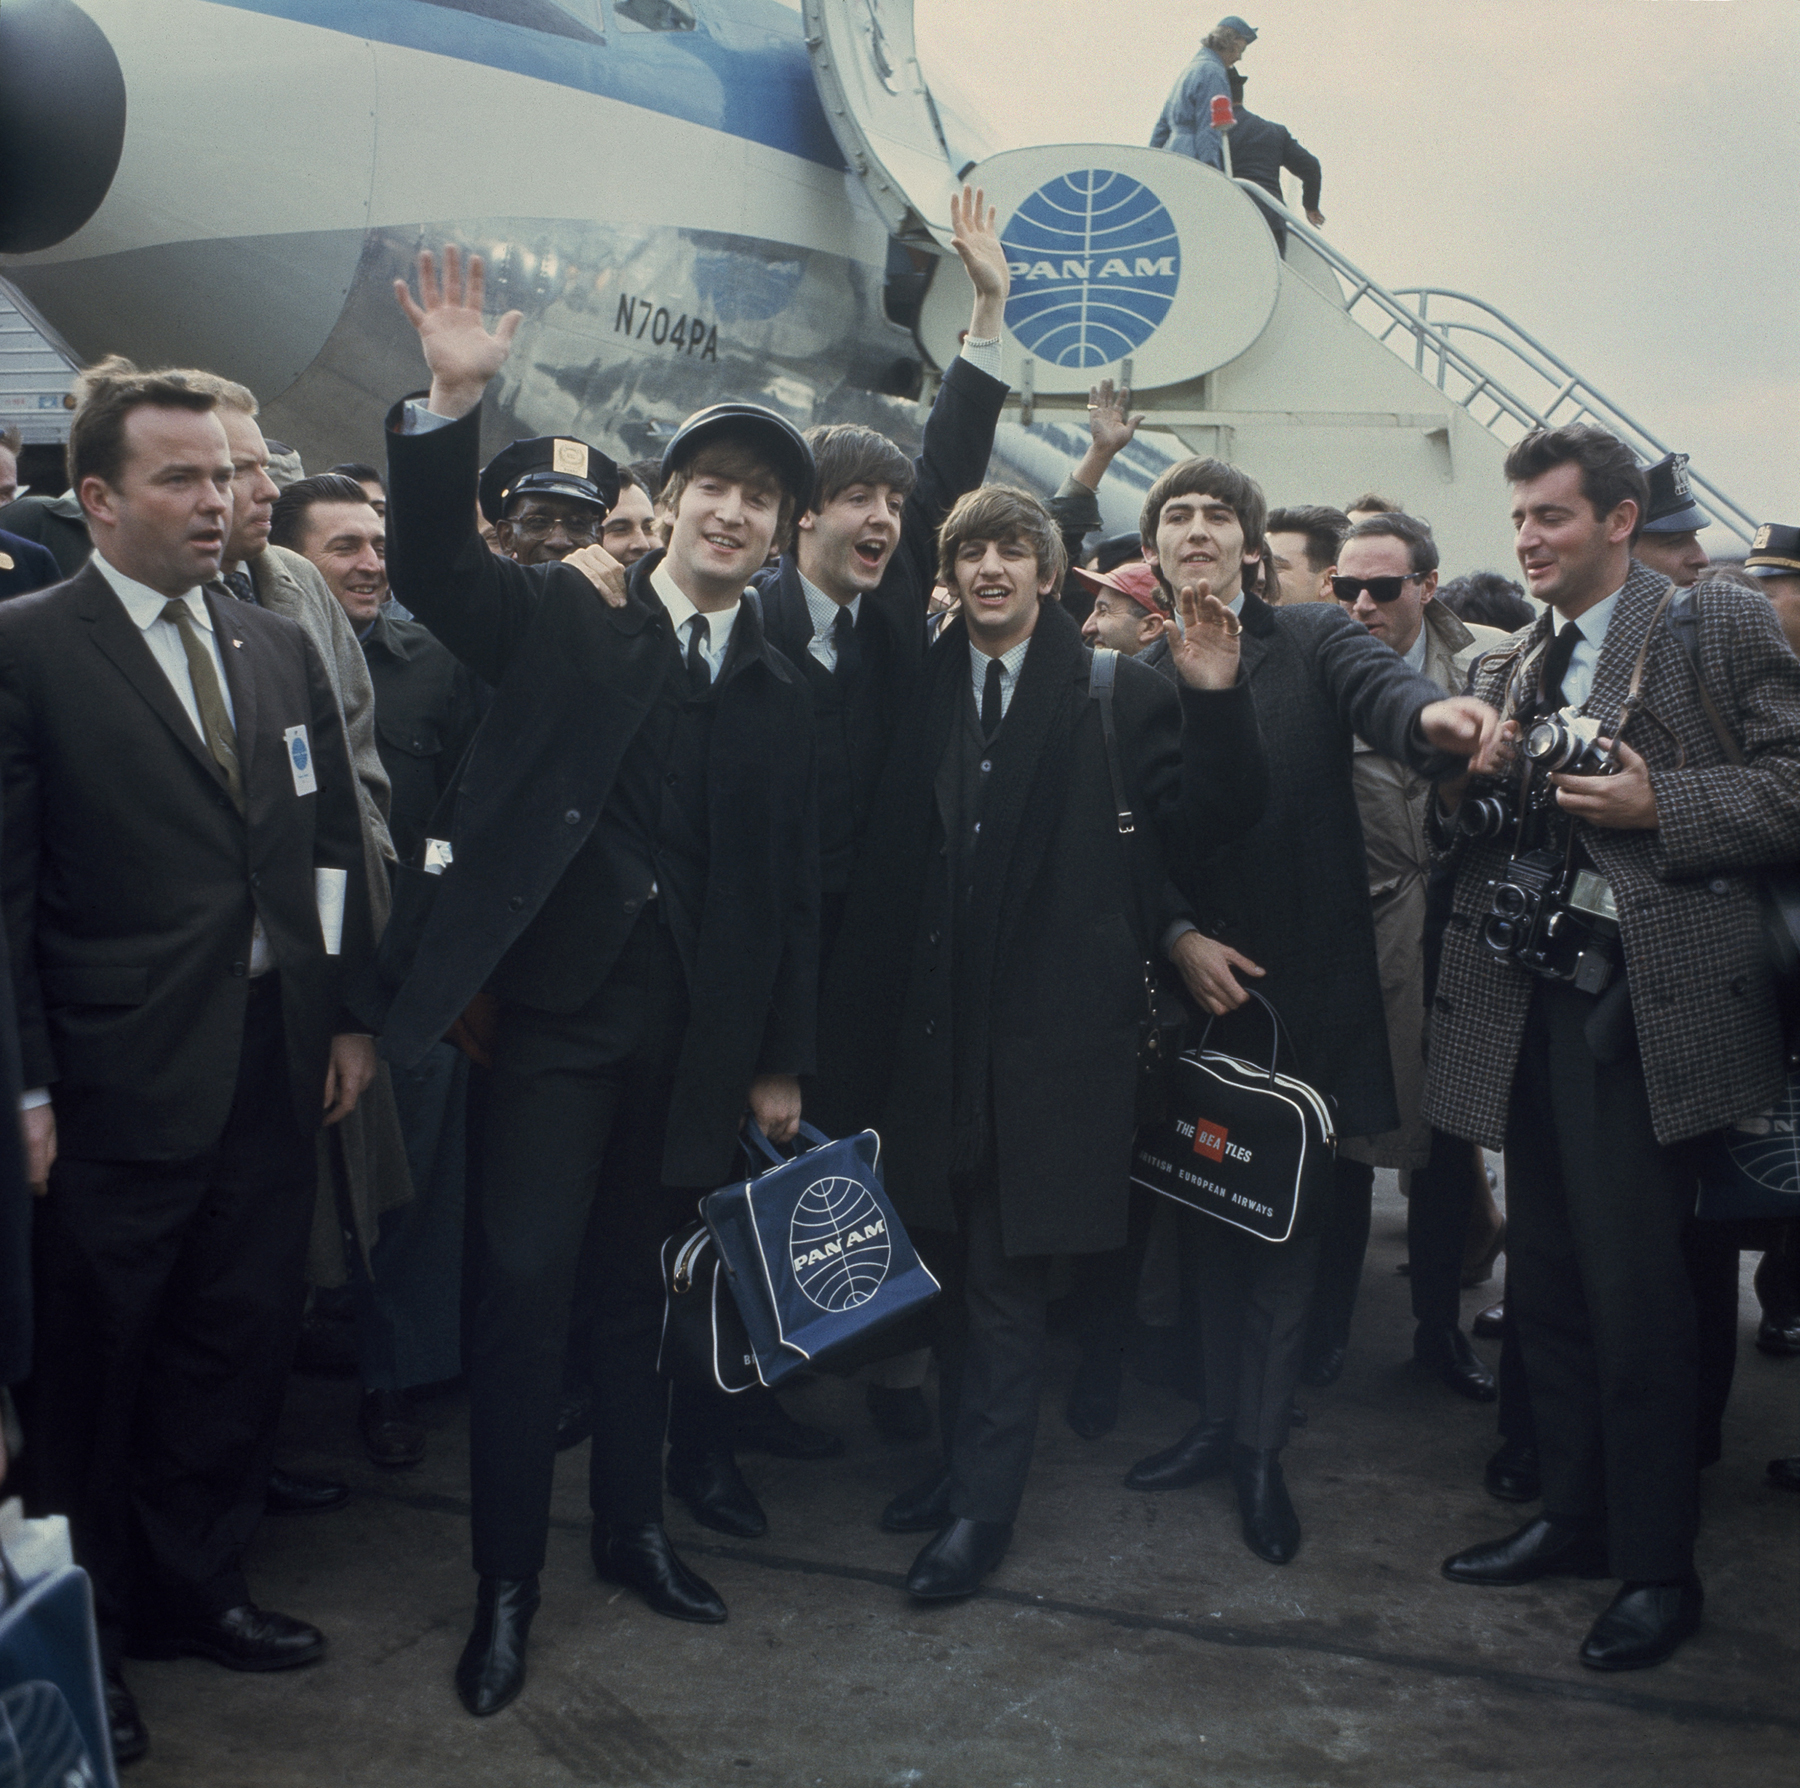 Image result for the beatles arrived in america in 1964